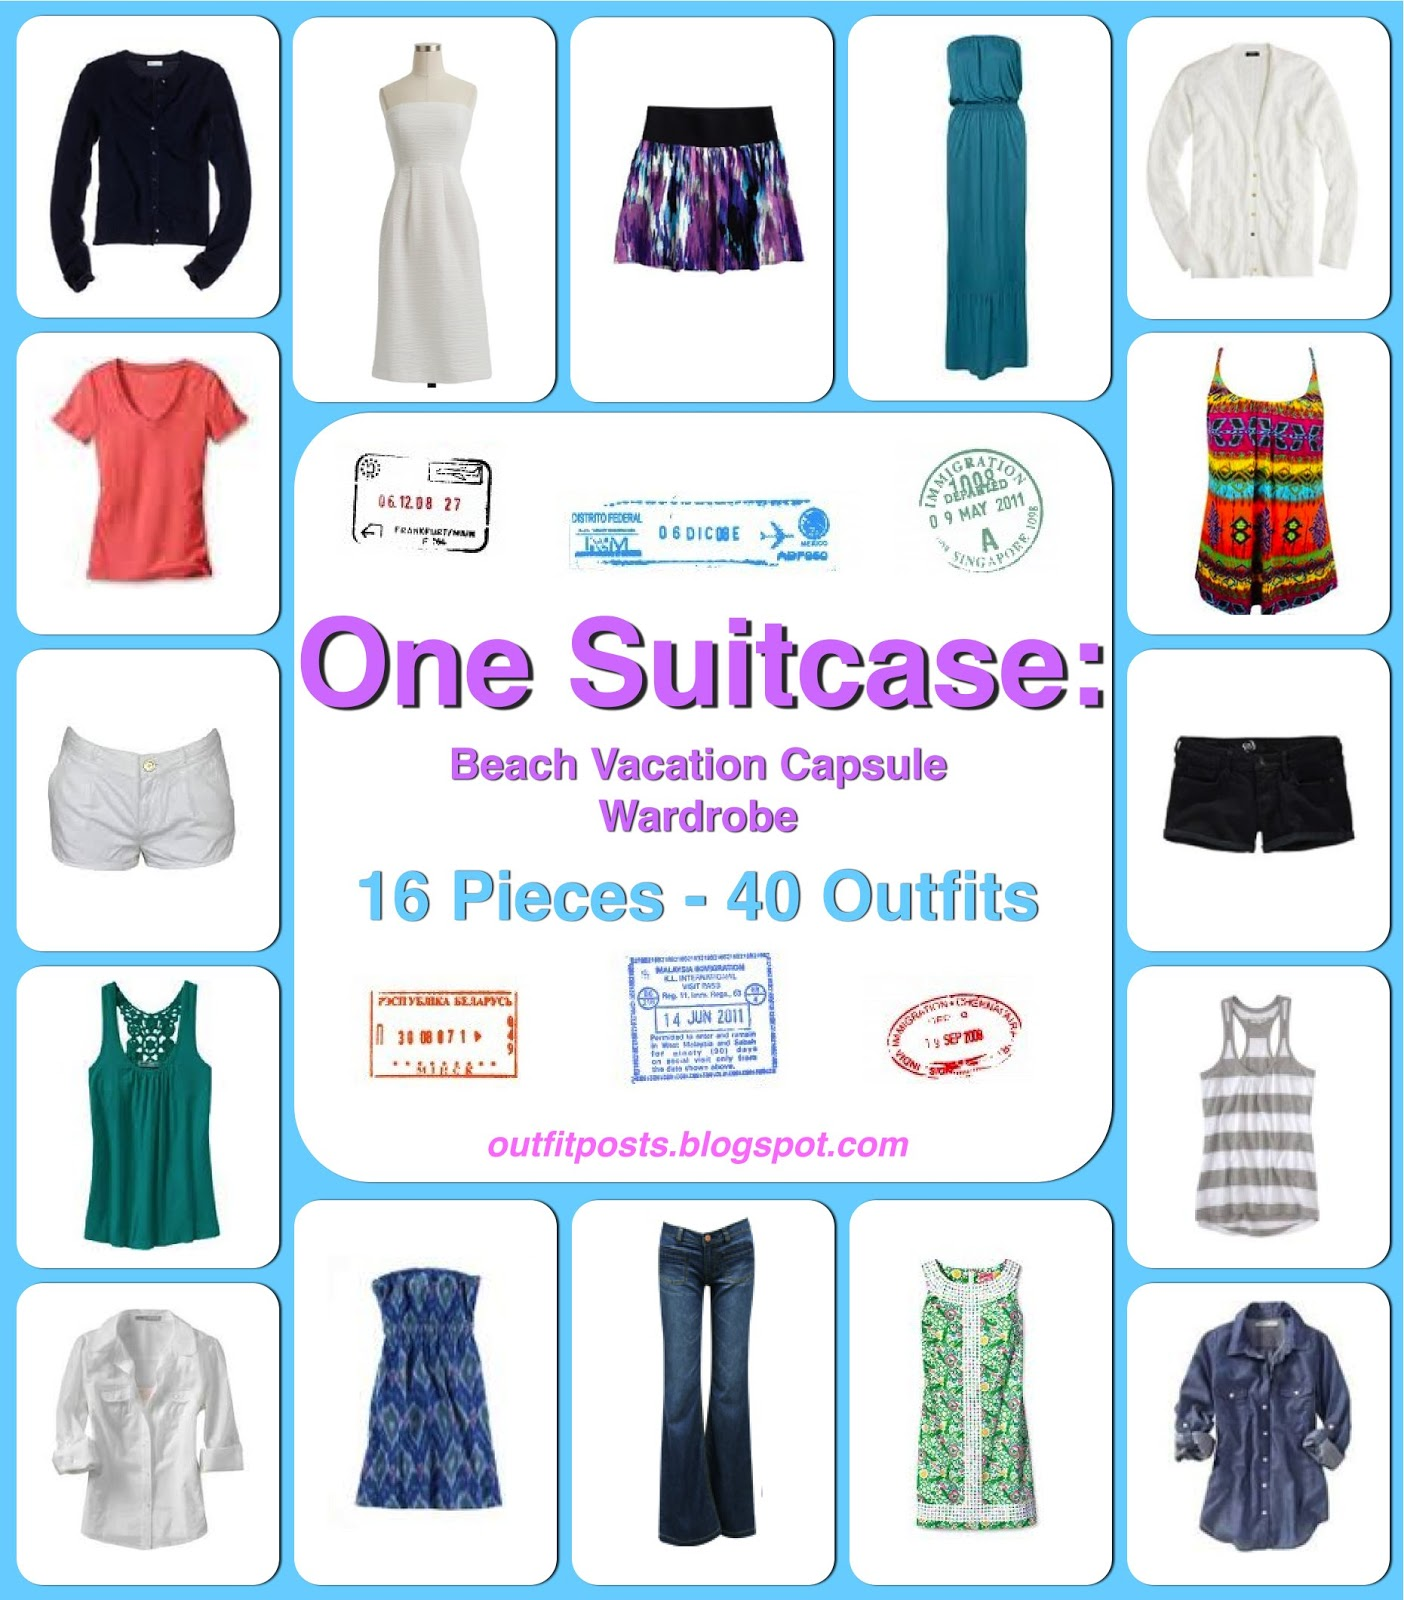 6459d8a634 one suitcase: beach vacation capsule wardrobe